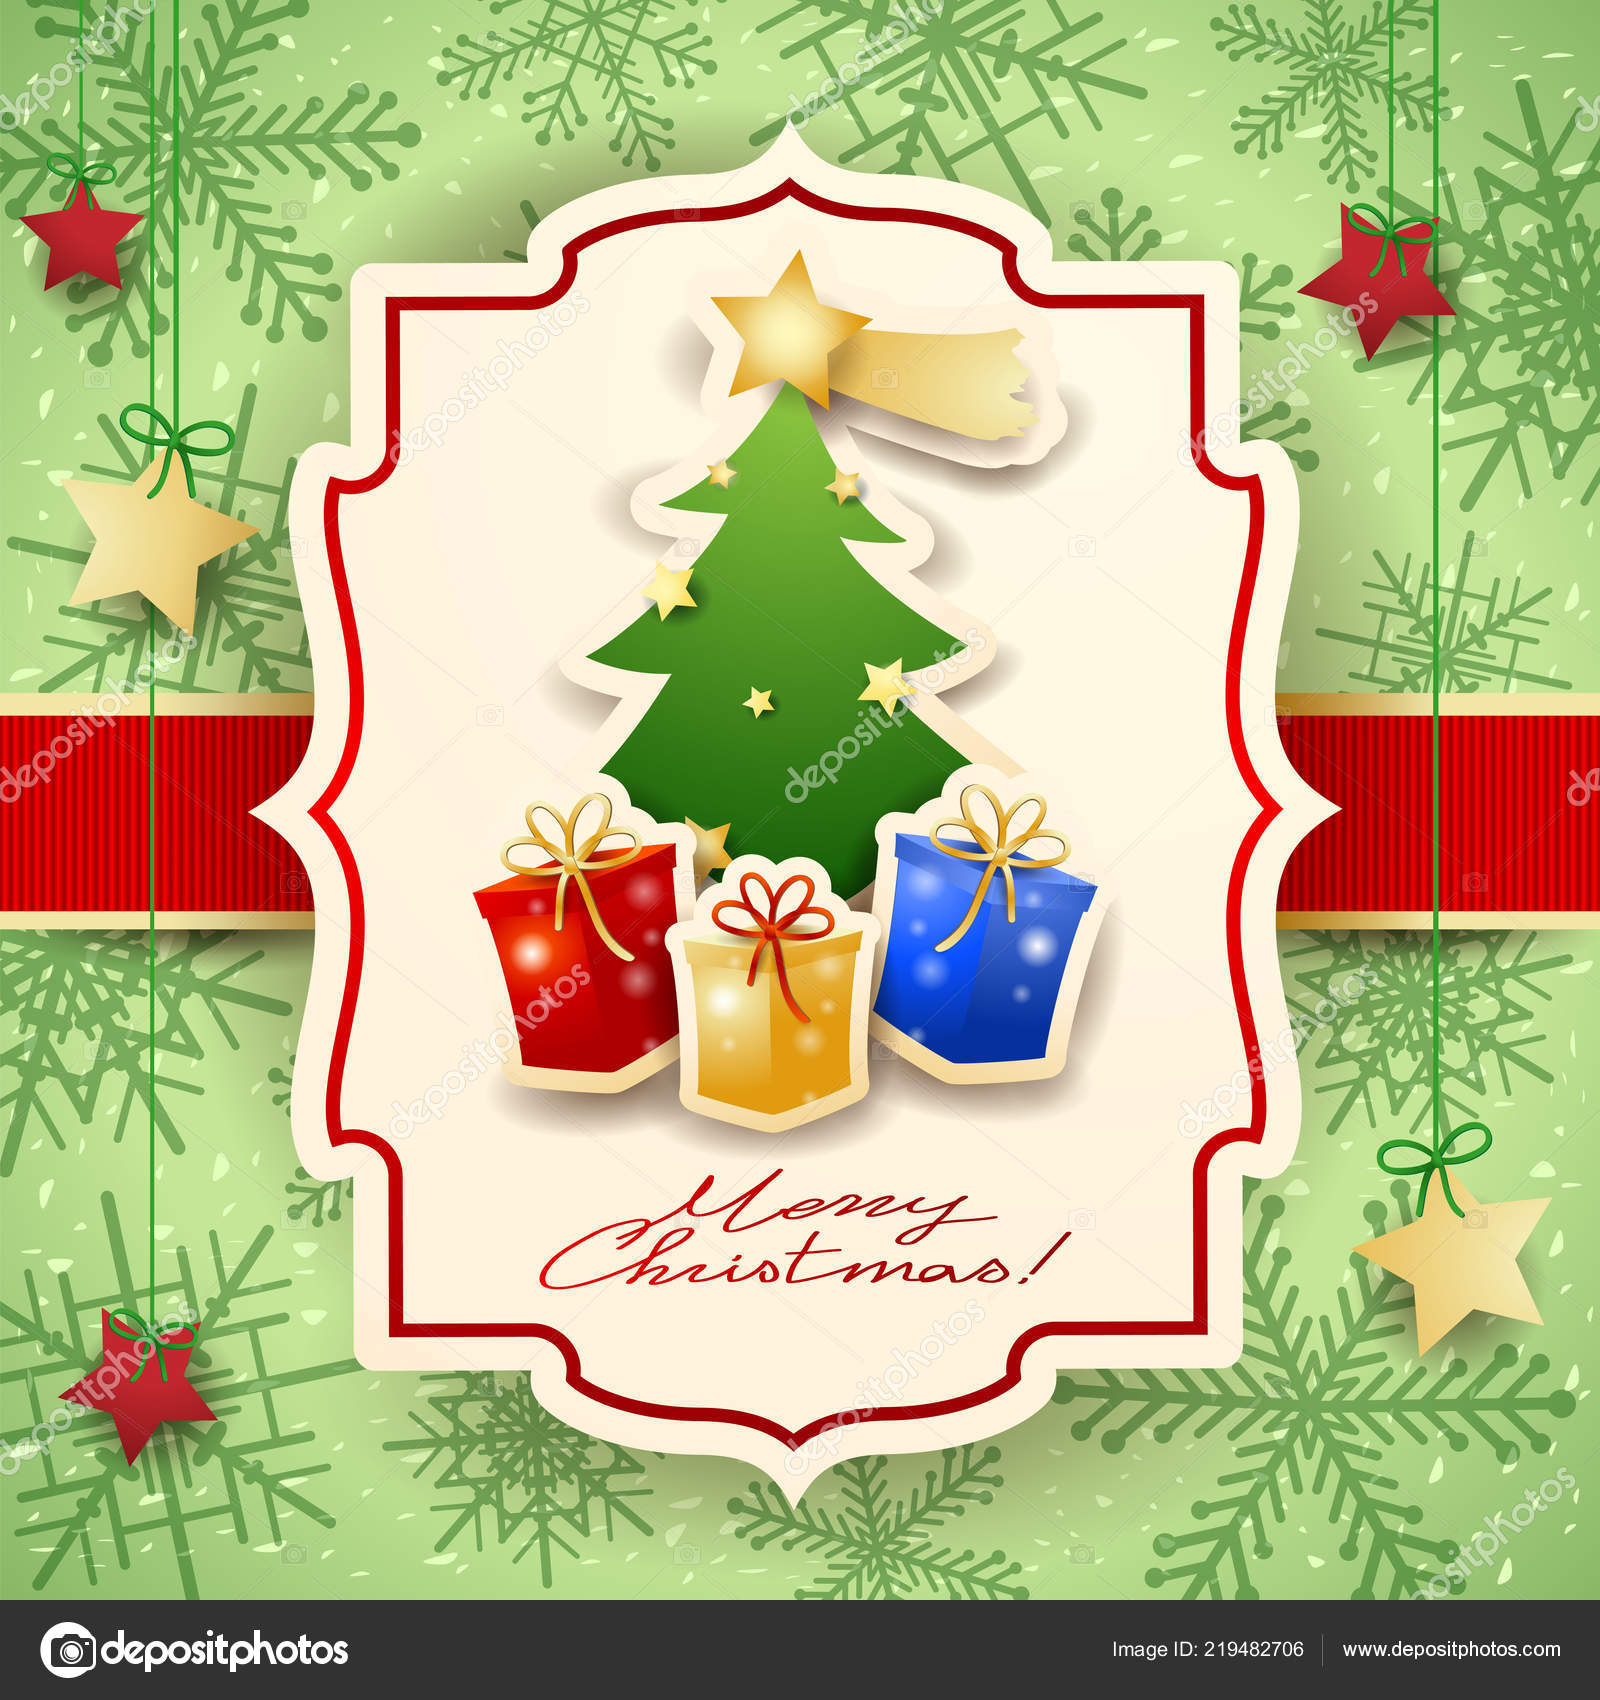 Christmas cards customer appreciation gifts